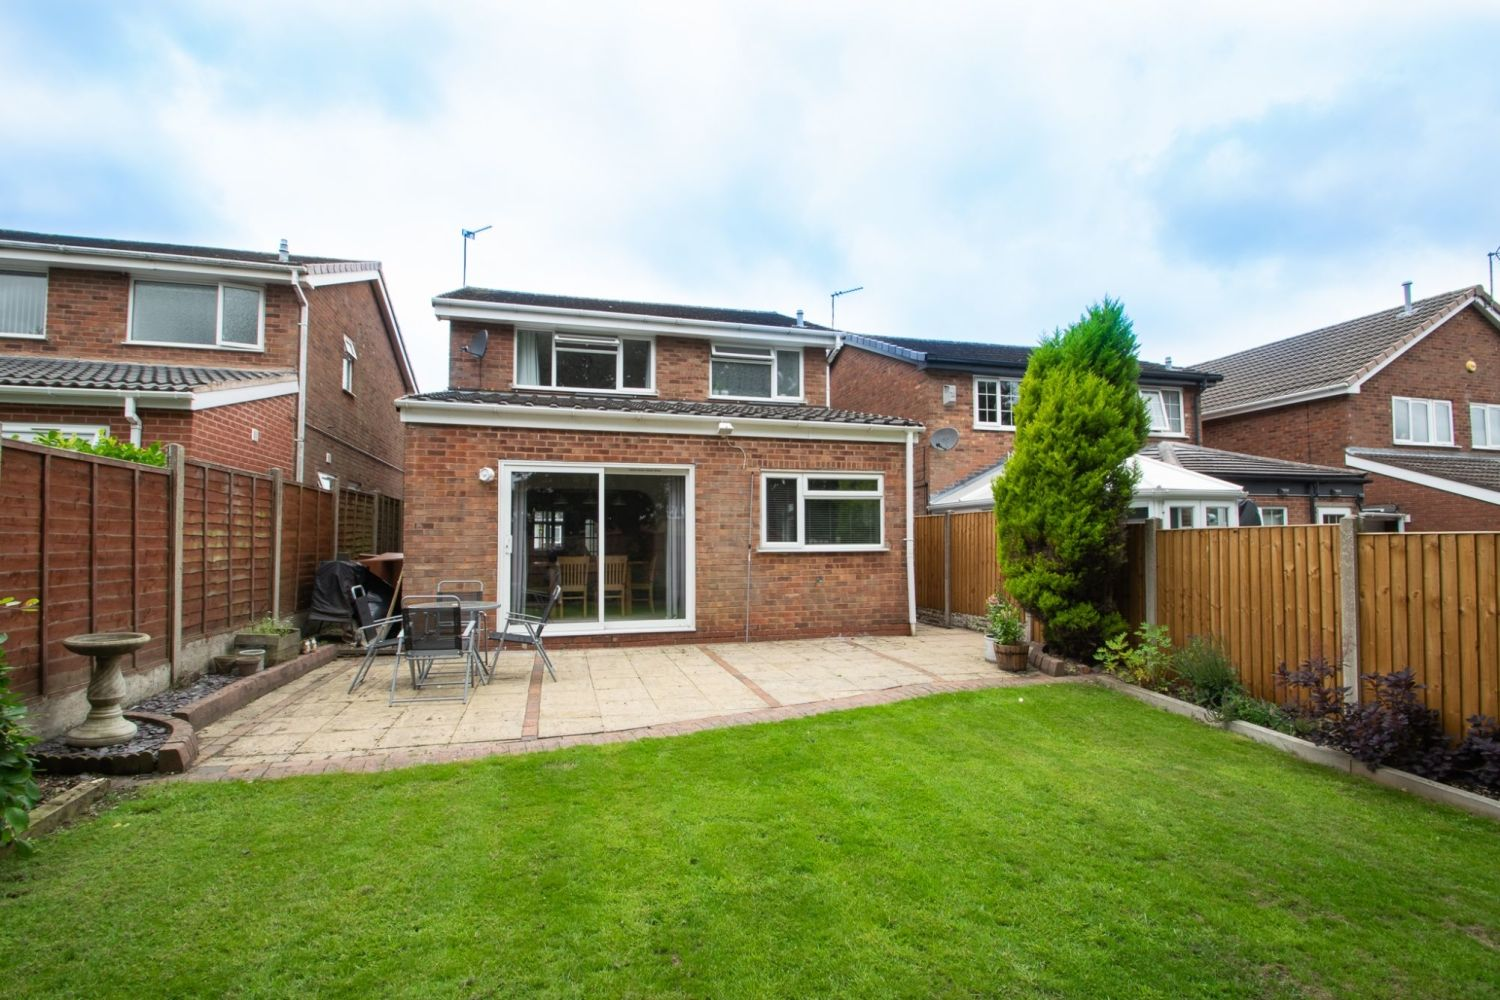 3 bed detached for sale in Clyde Avenue, Halesowen 22